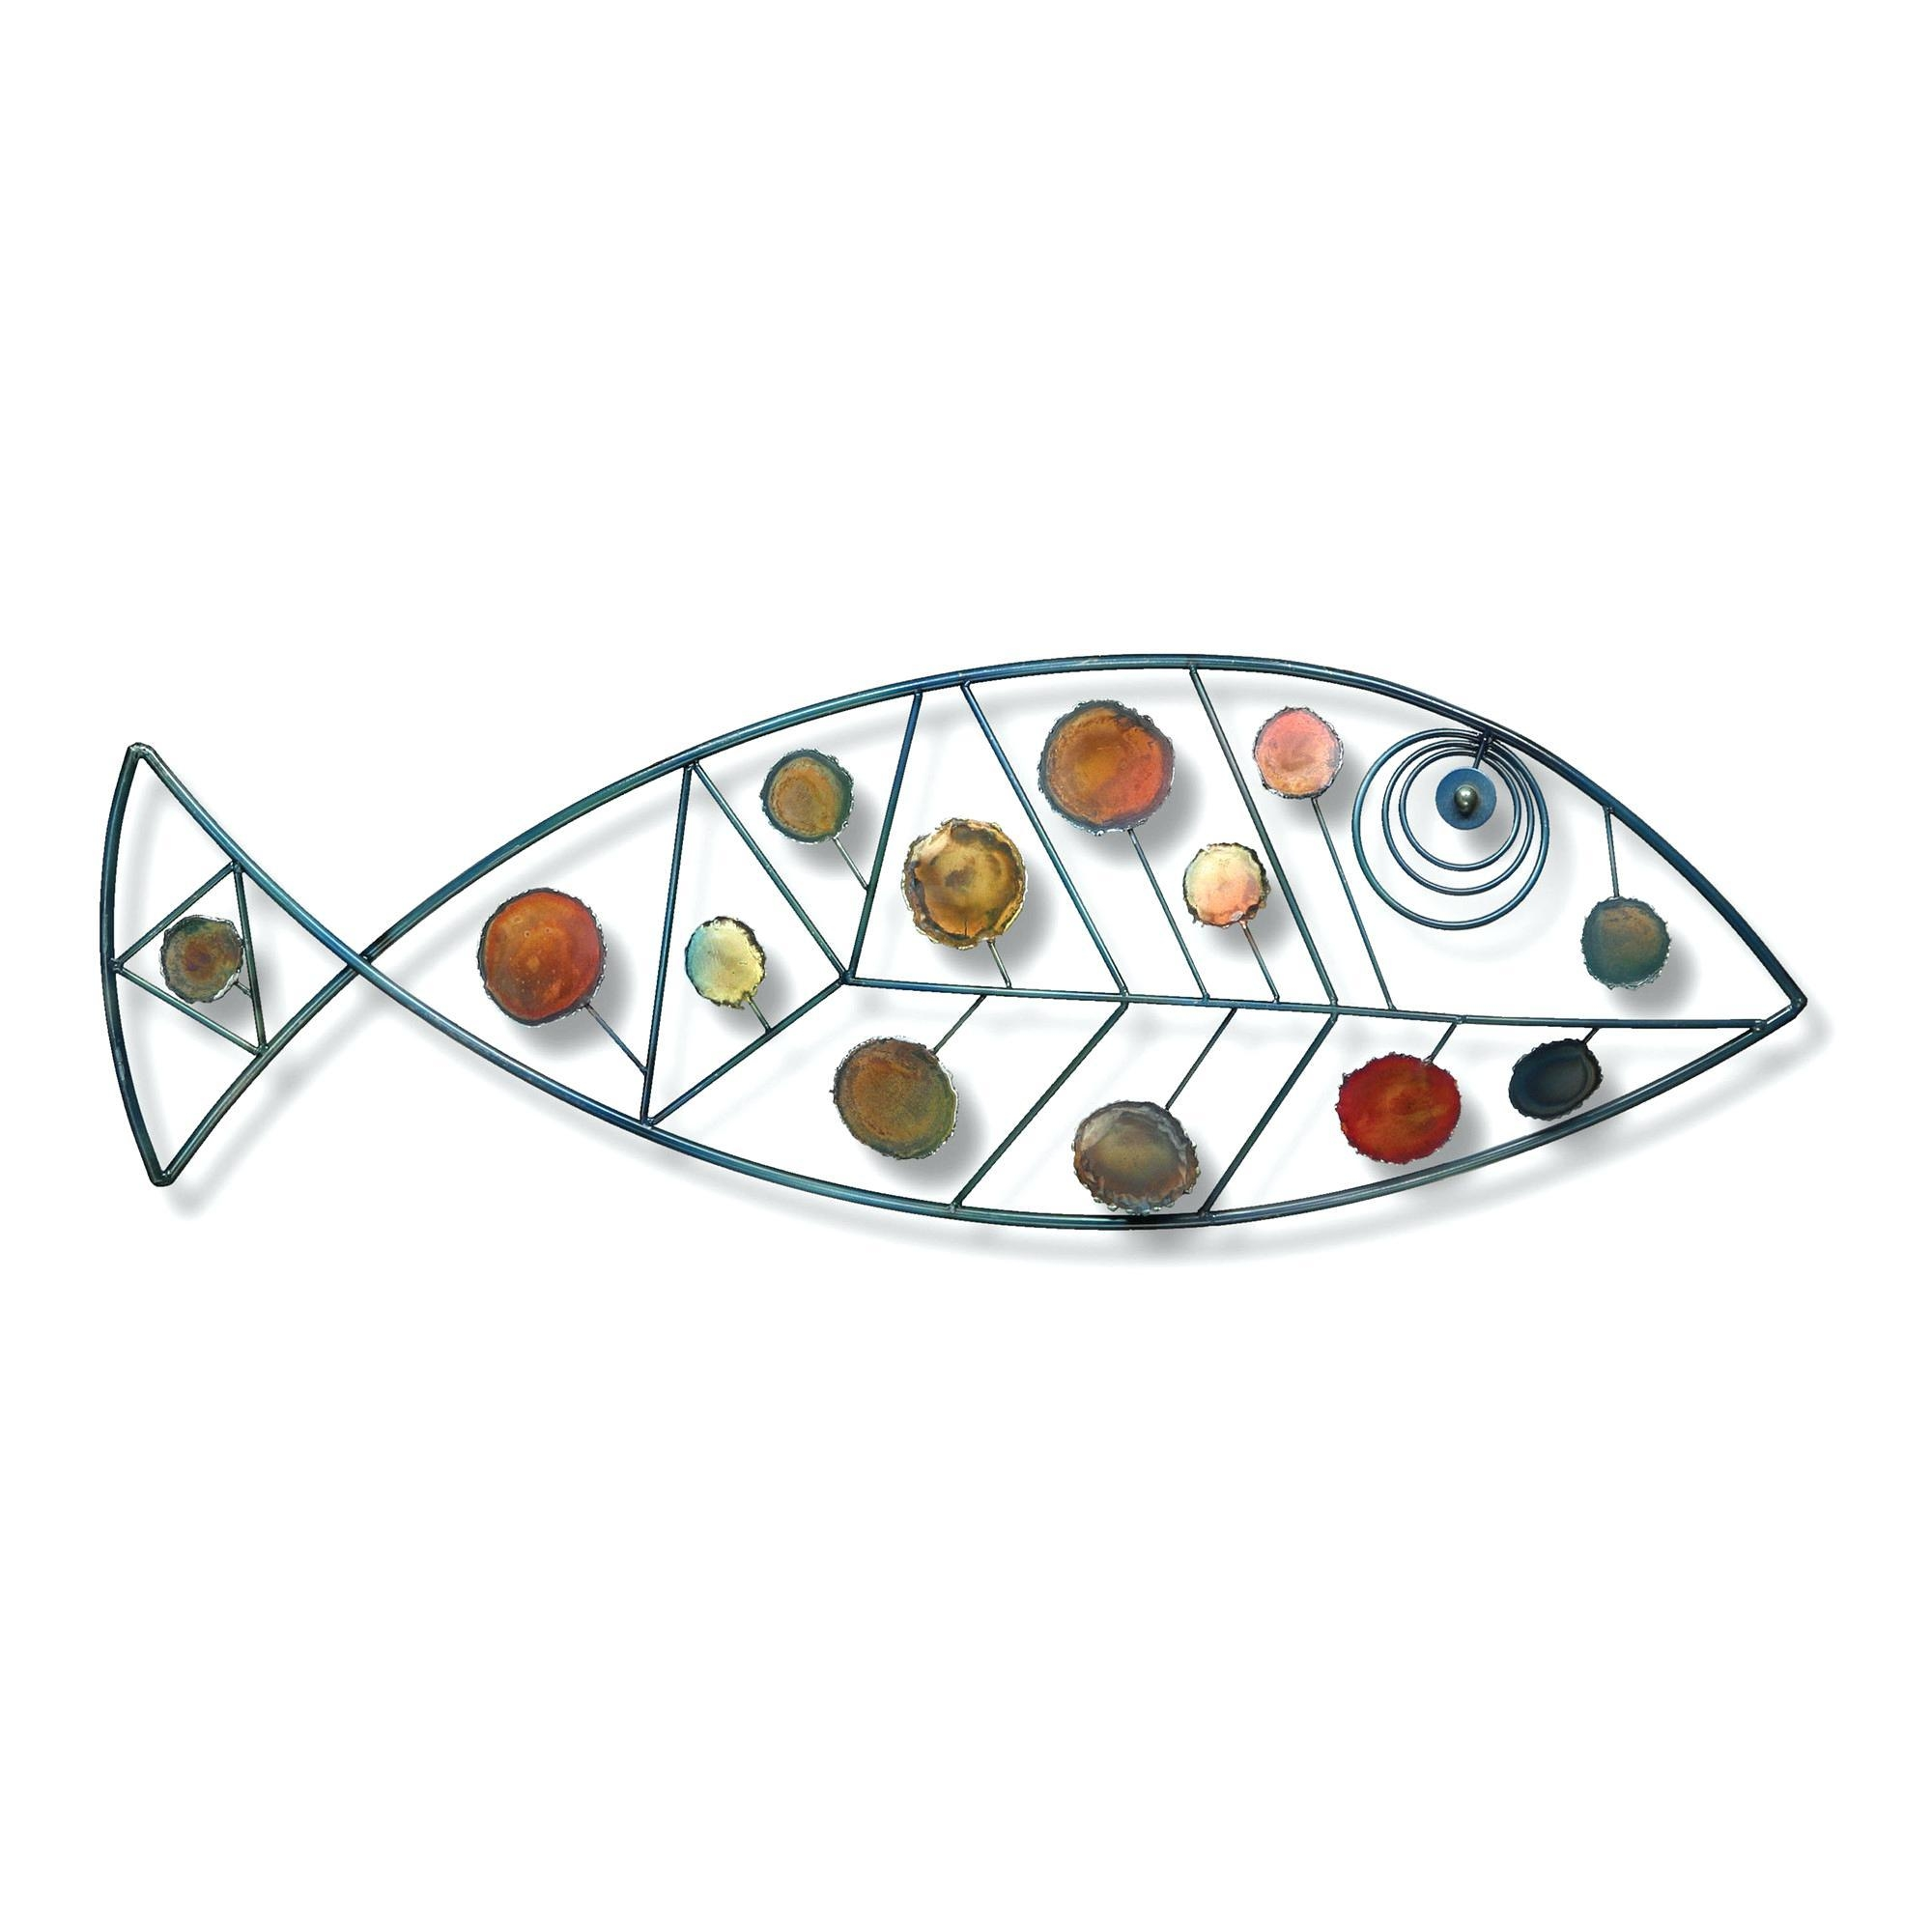 20 Ideas of Metal School of Fish Wall Art